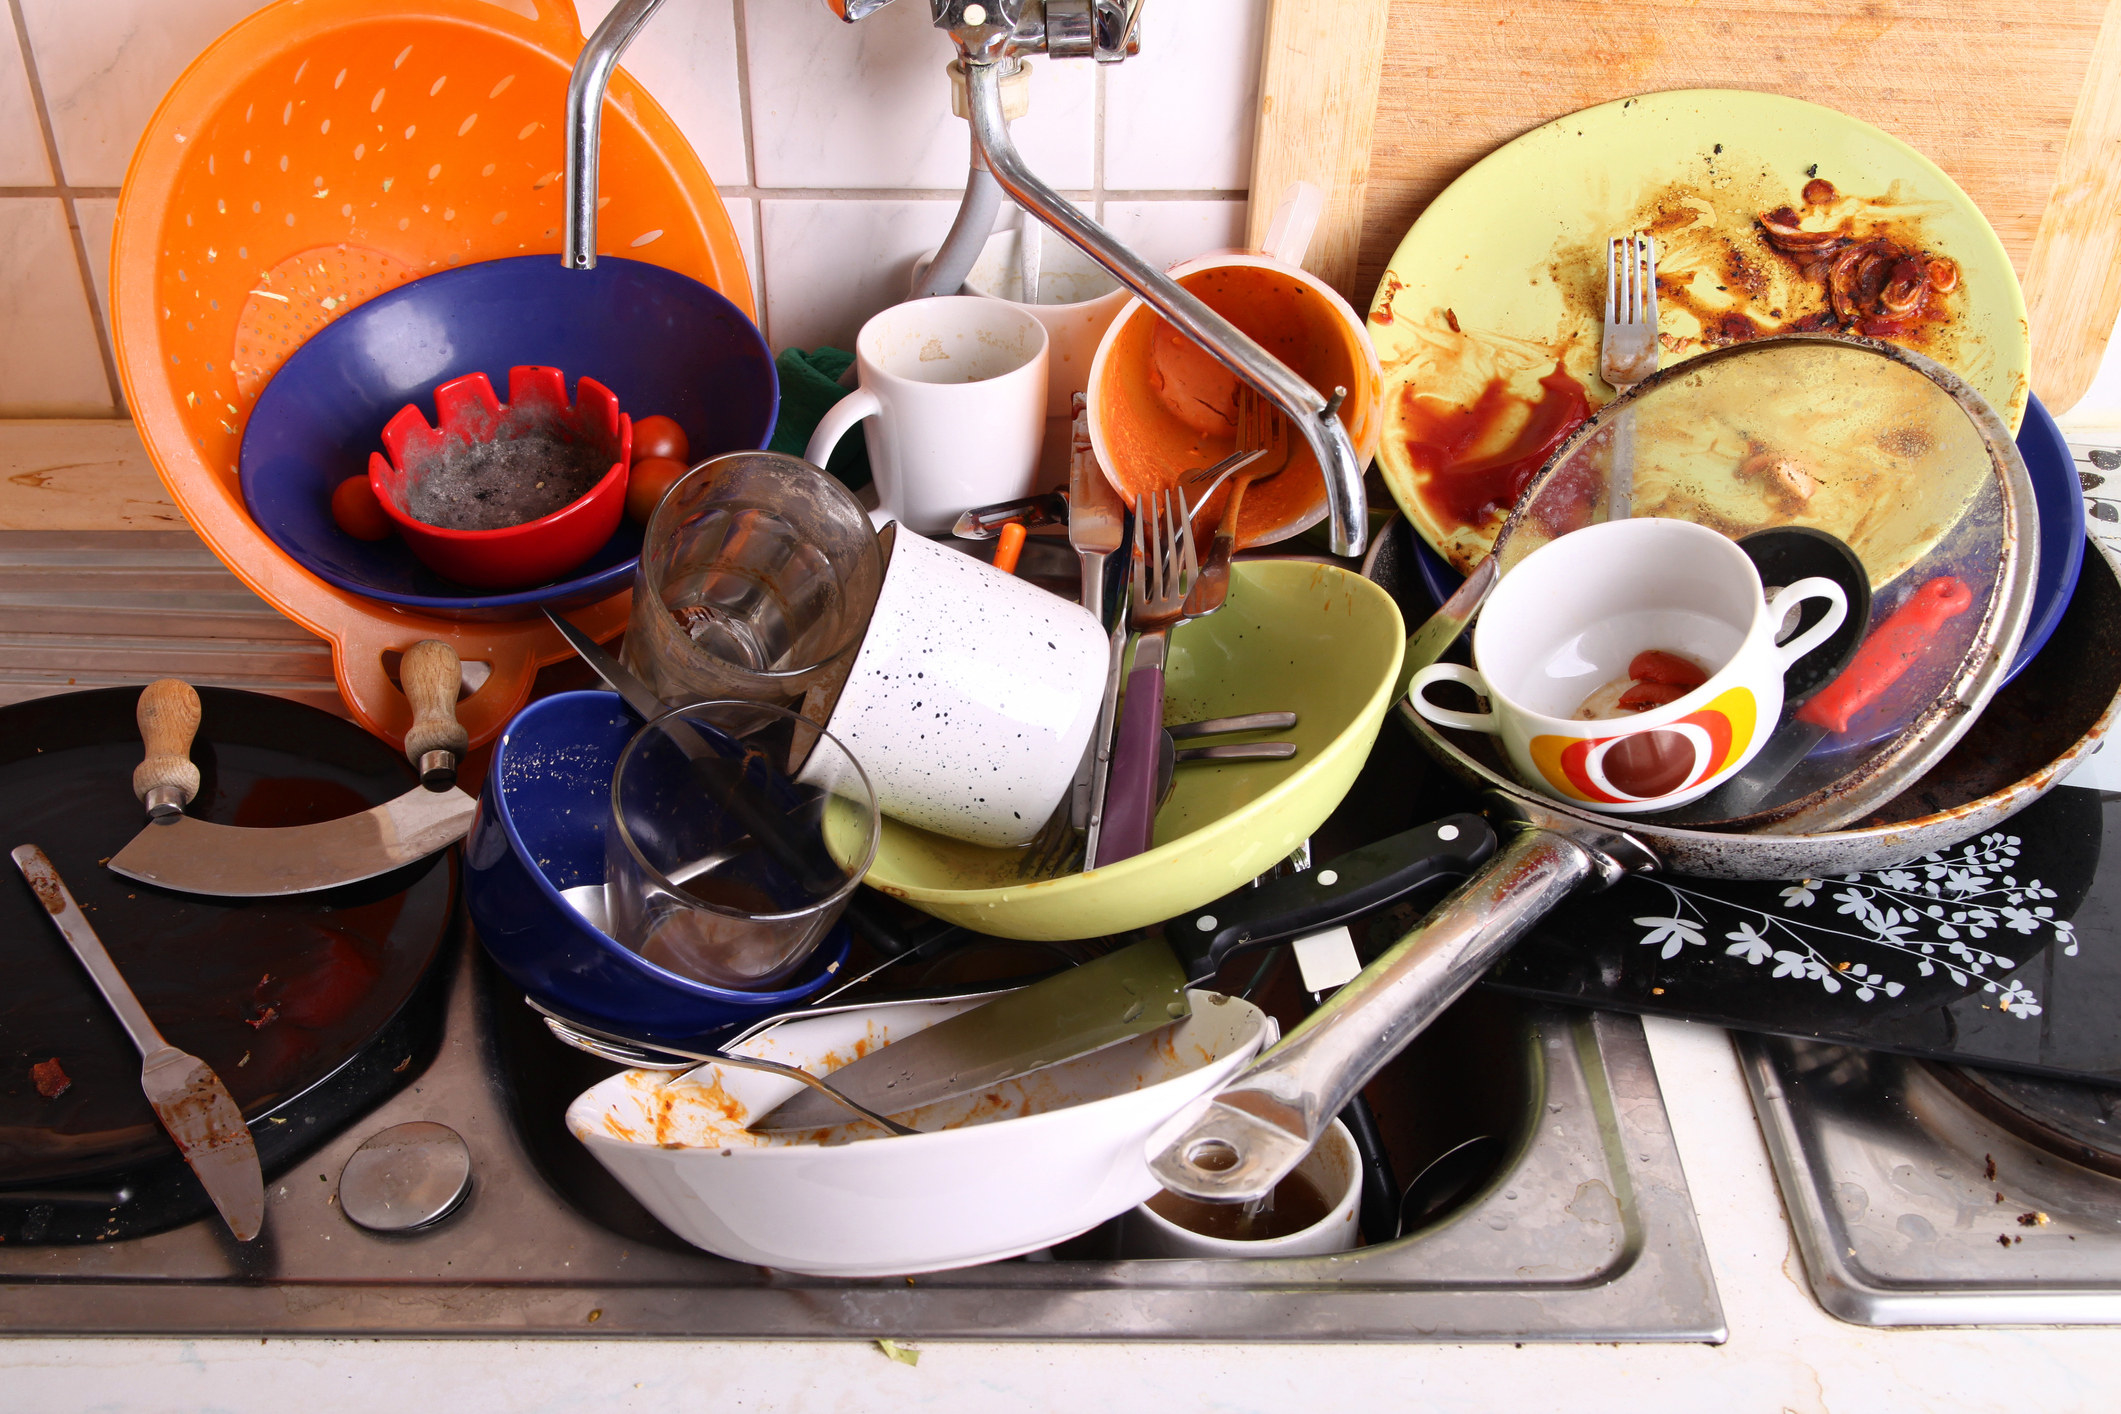 Huge pile of dirty pots, pans, cups, and dishes in the sink waiting to be washed